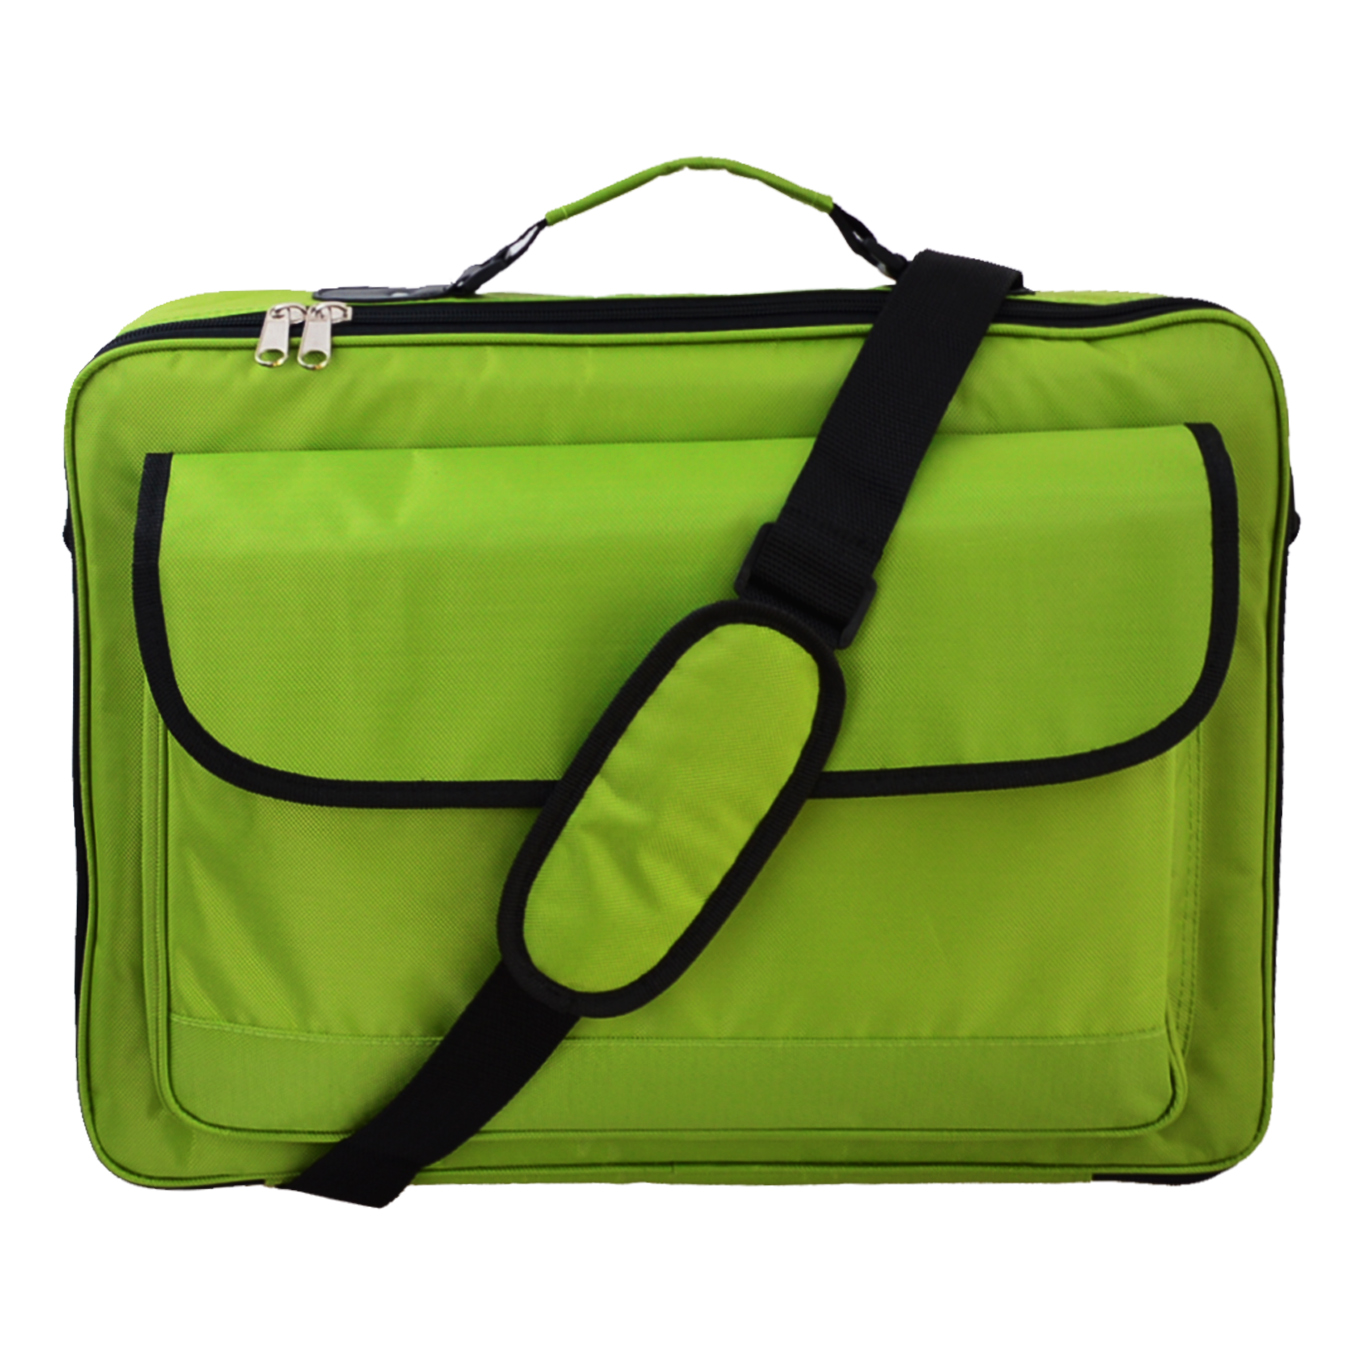 "16"" 16.4"" 15.6"" 17.3"" 17"" 18"" 18.4"" Inch Green Laptop Notebook carrying briefcase bag case"